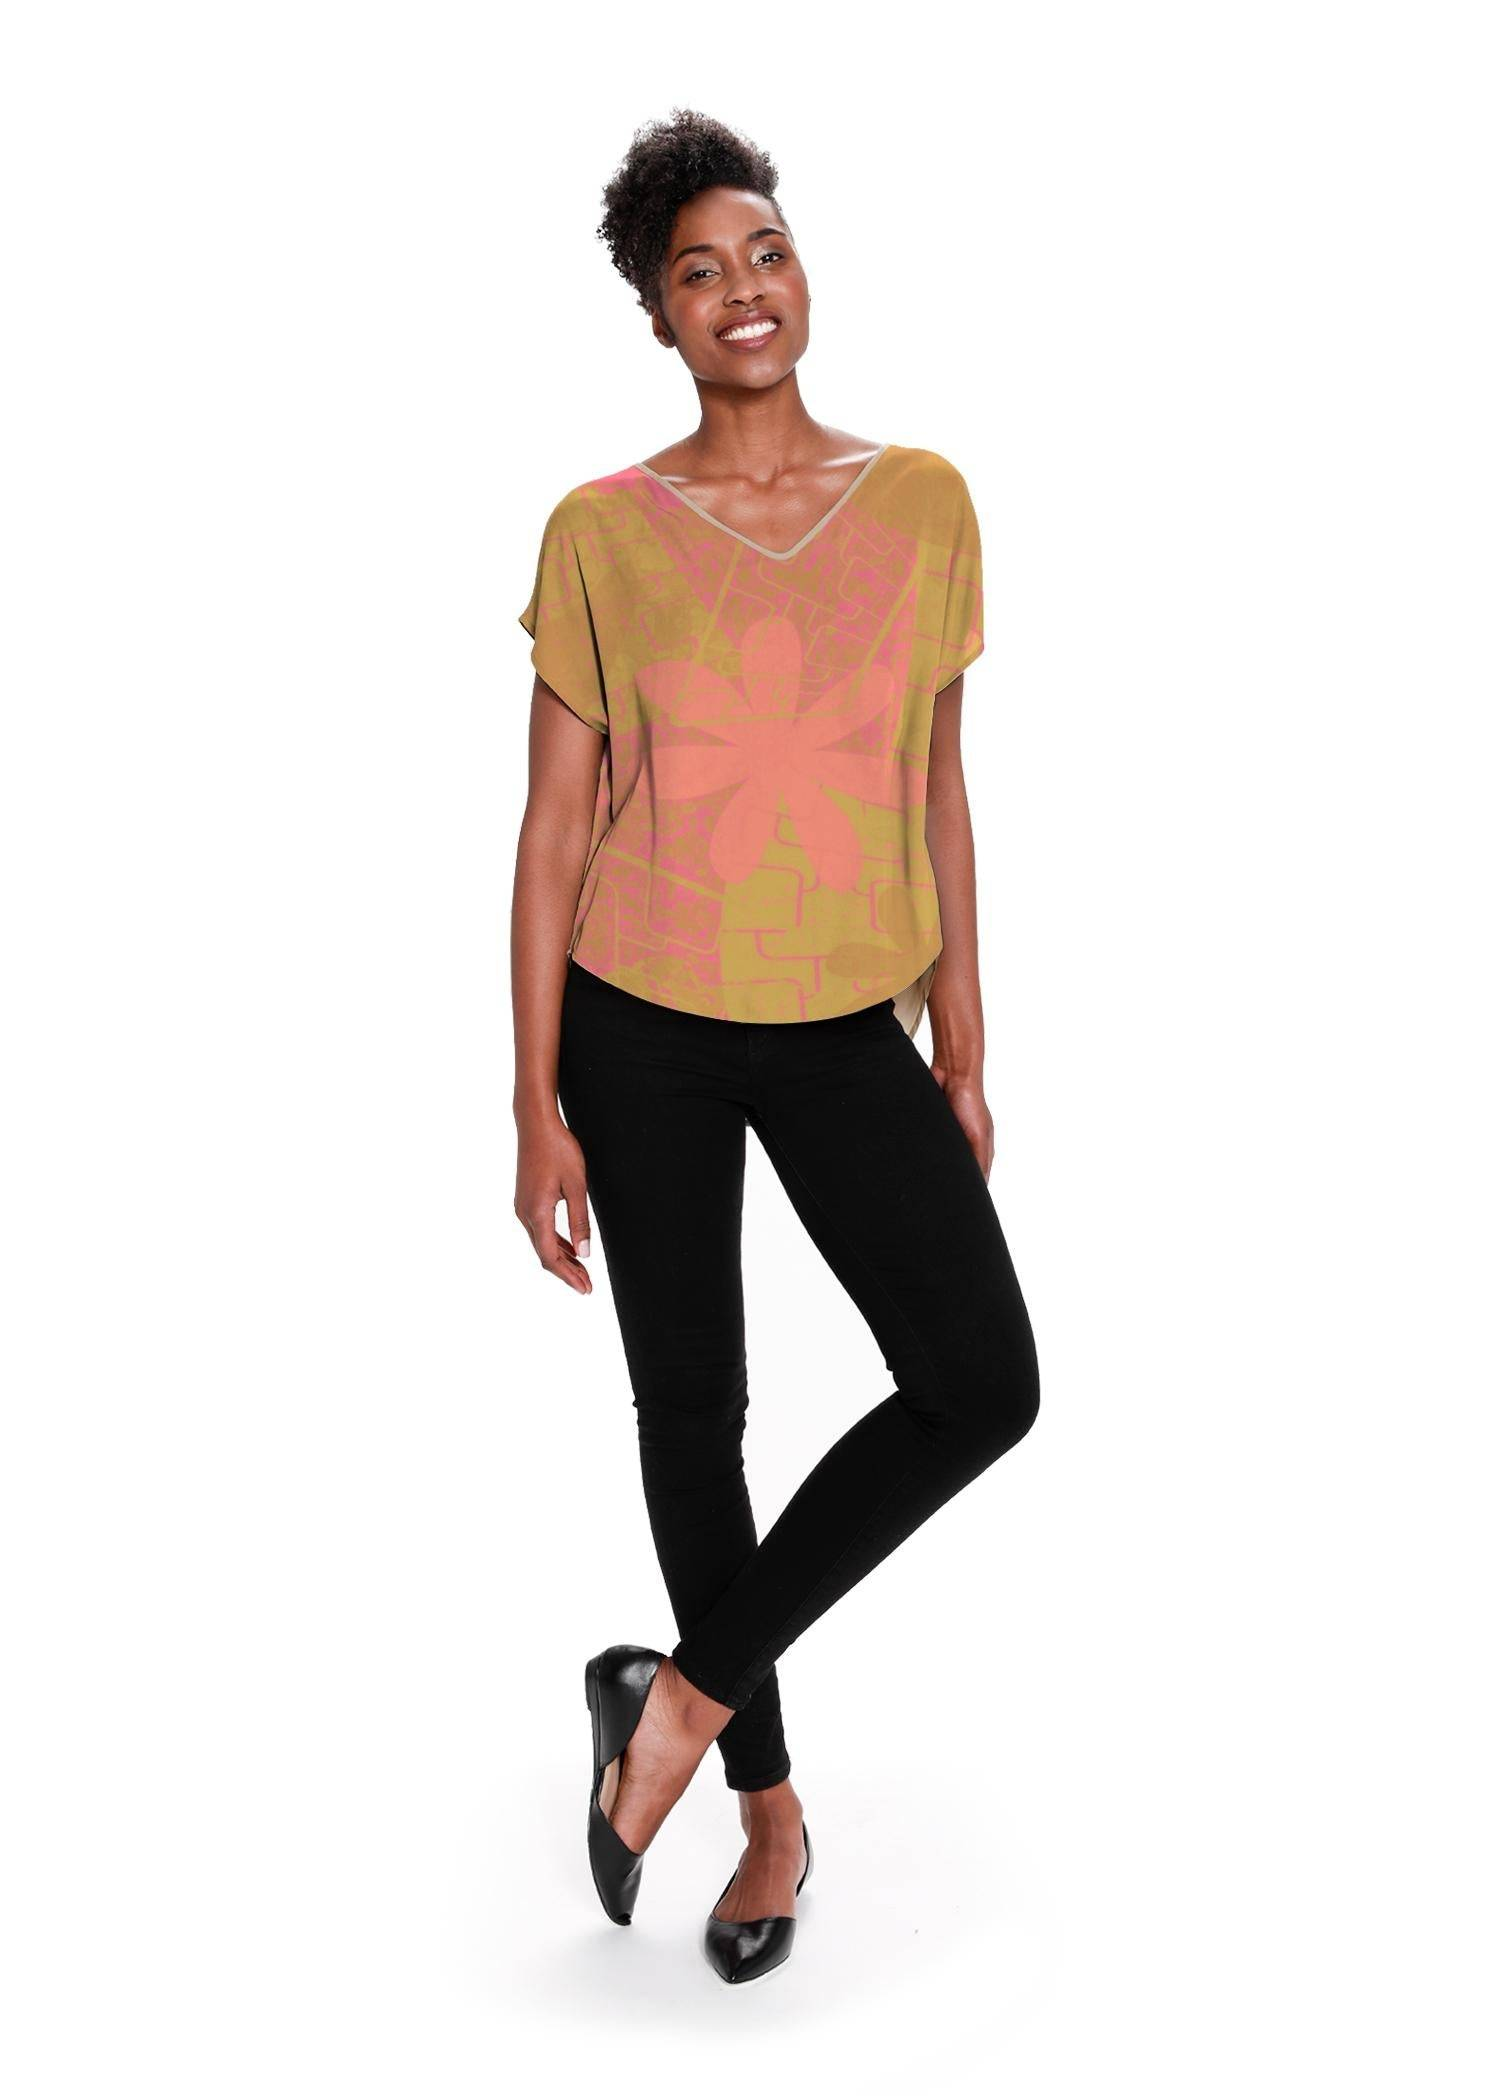 VIDA Women's V-Neck Top - Garden Trellis; Rose Gold by VIDA Original Artist  - Size: Small